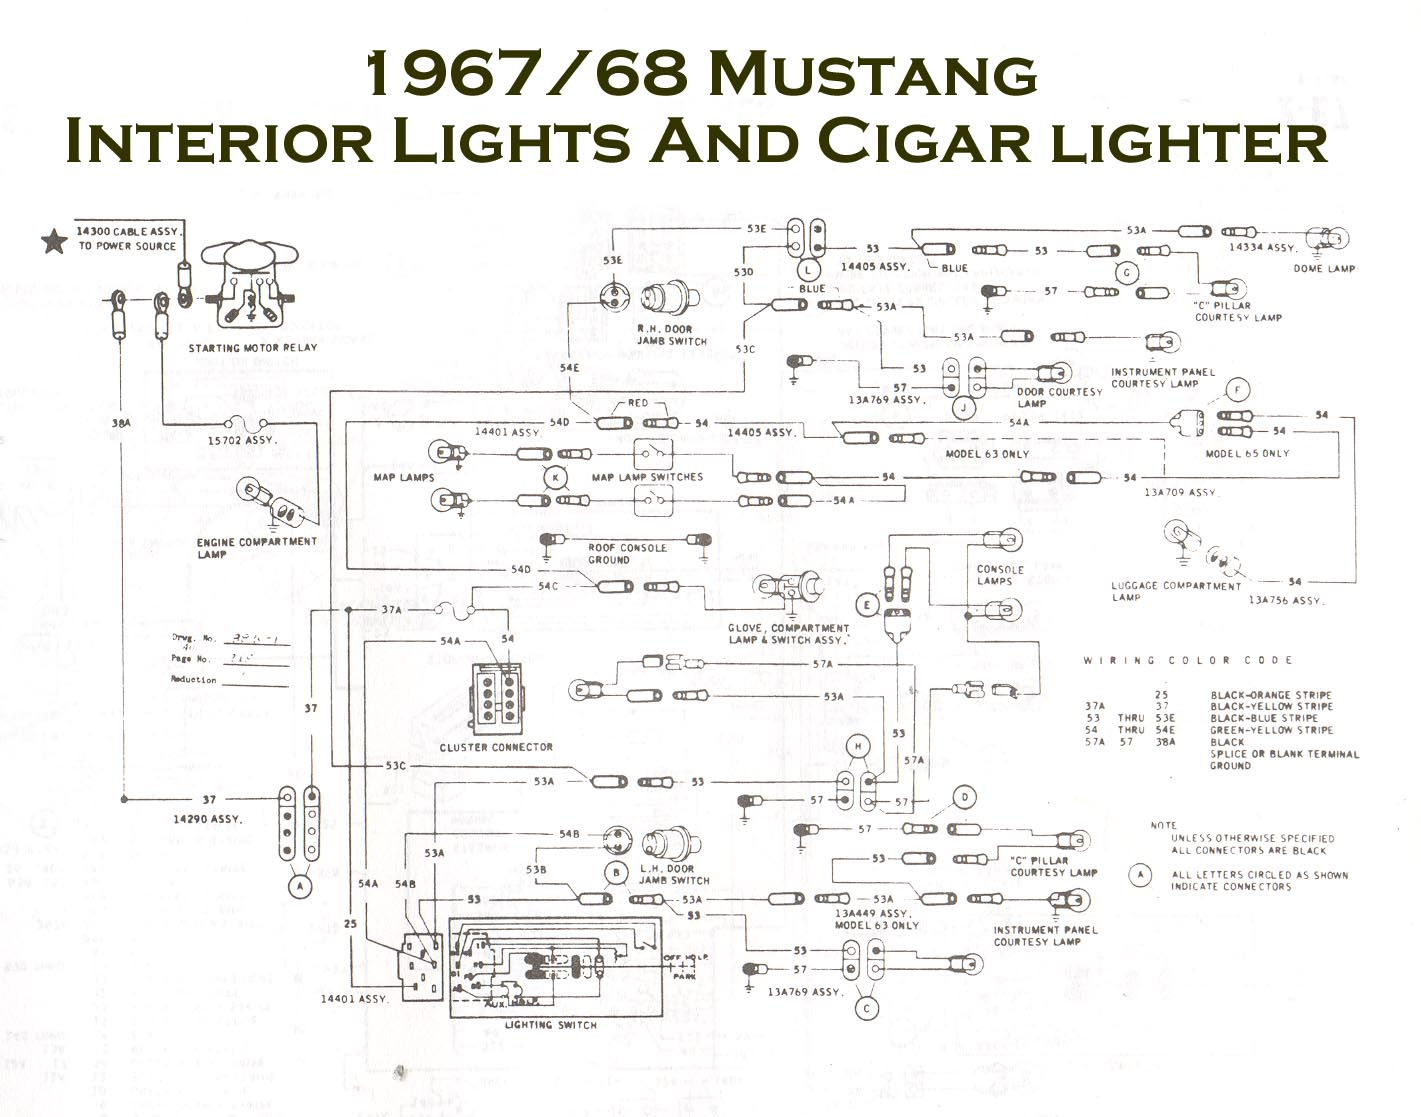 1967 68_console_wiring_diagram vintage mustang wiring diagrams 2004 volvo s40 radio wiring diagram at alyssarenee.co